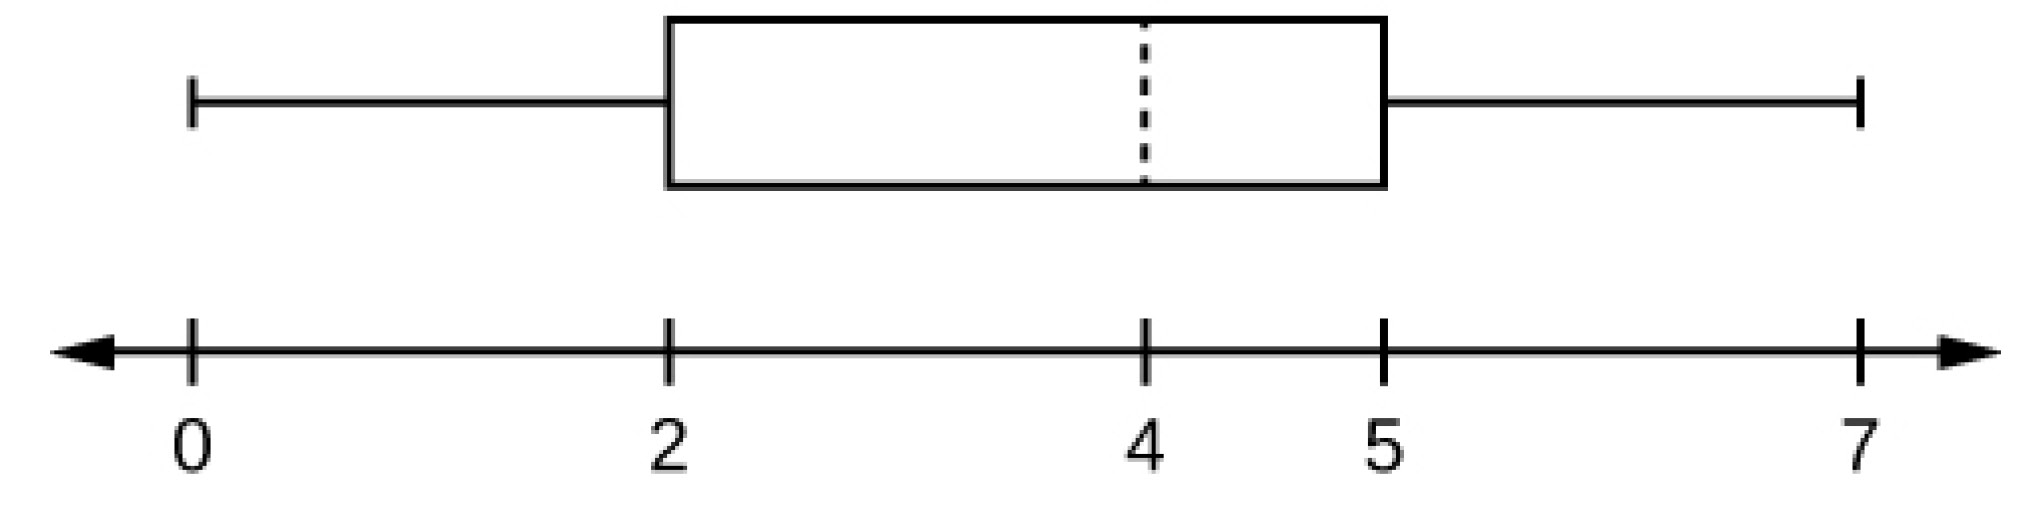 This is a boxplot over a number line  from 0 to 7. The left whisker ranges from minimum, 0, to lower quartile, 2. The box runs from lower quartile, 2, to upper quartile, 5. A dashed line marks the median at 4. The right whisker runs from 5 to maximum value 7.